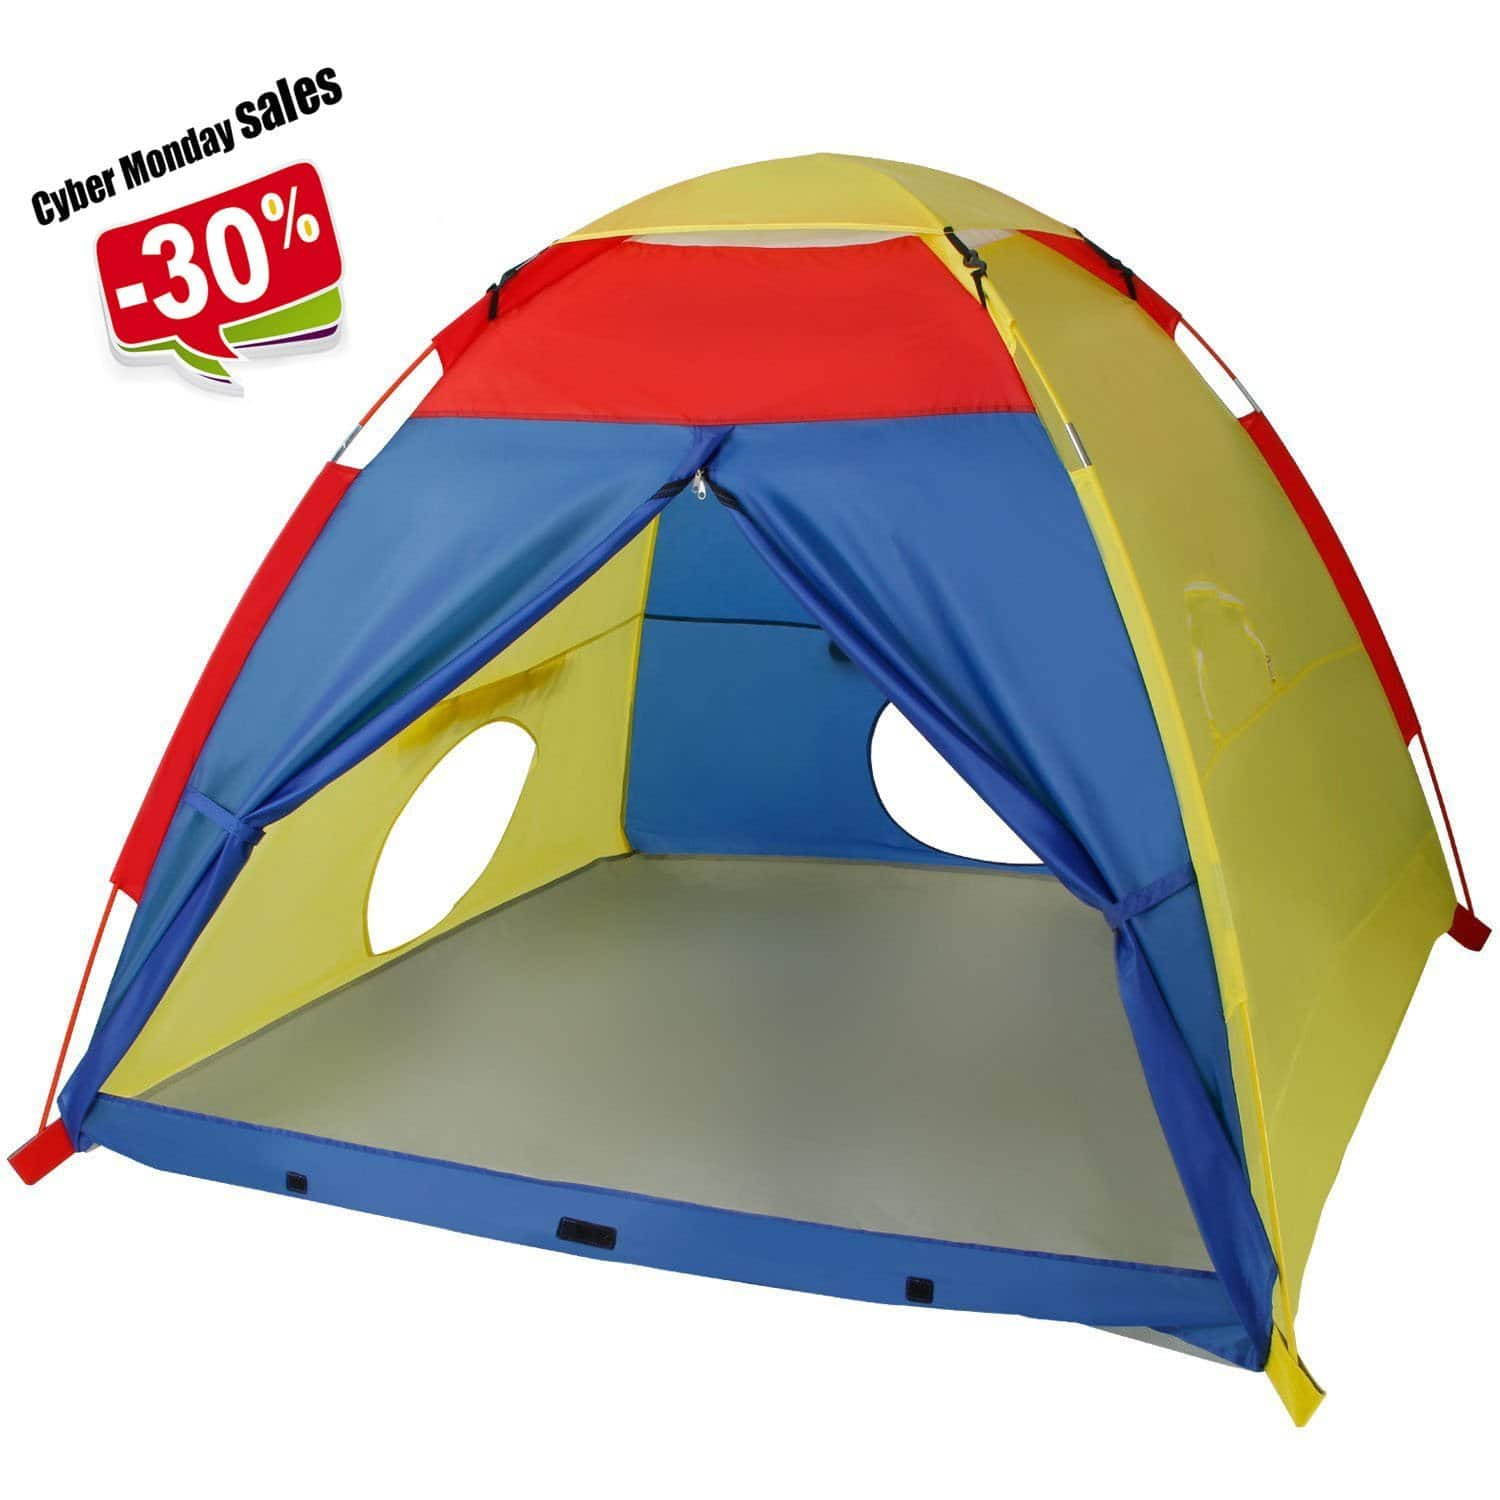 Toy Castle Play Tent Pop-up Children Game tent - $23.99 AC